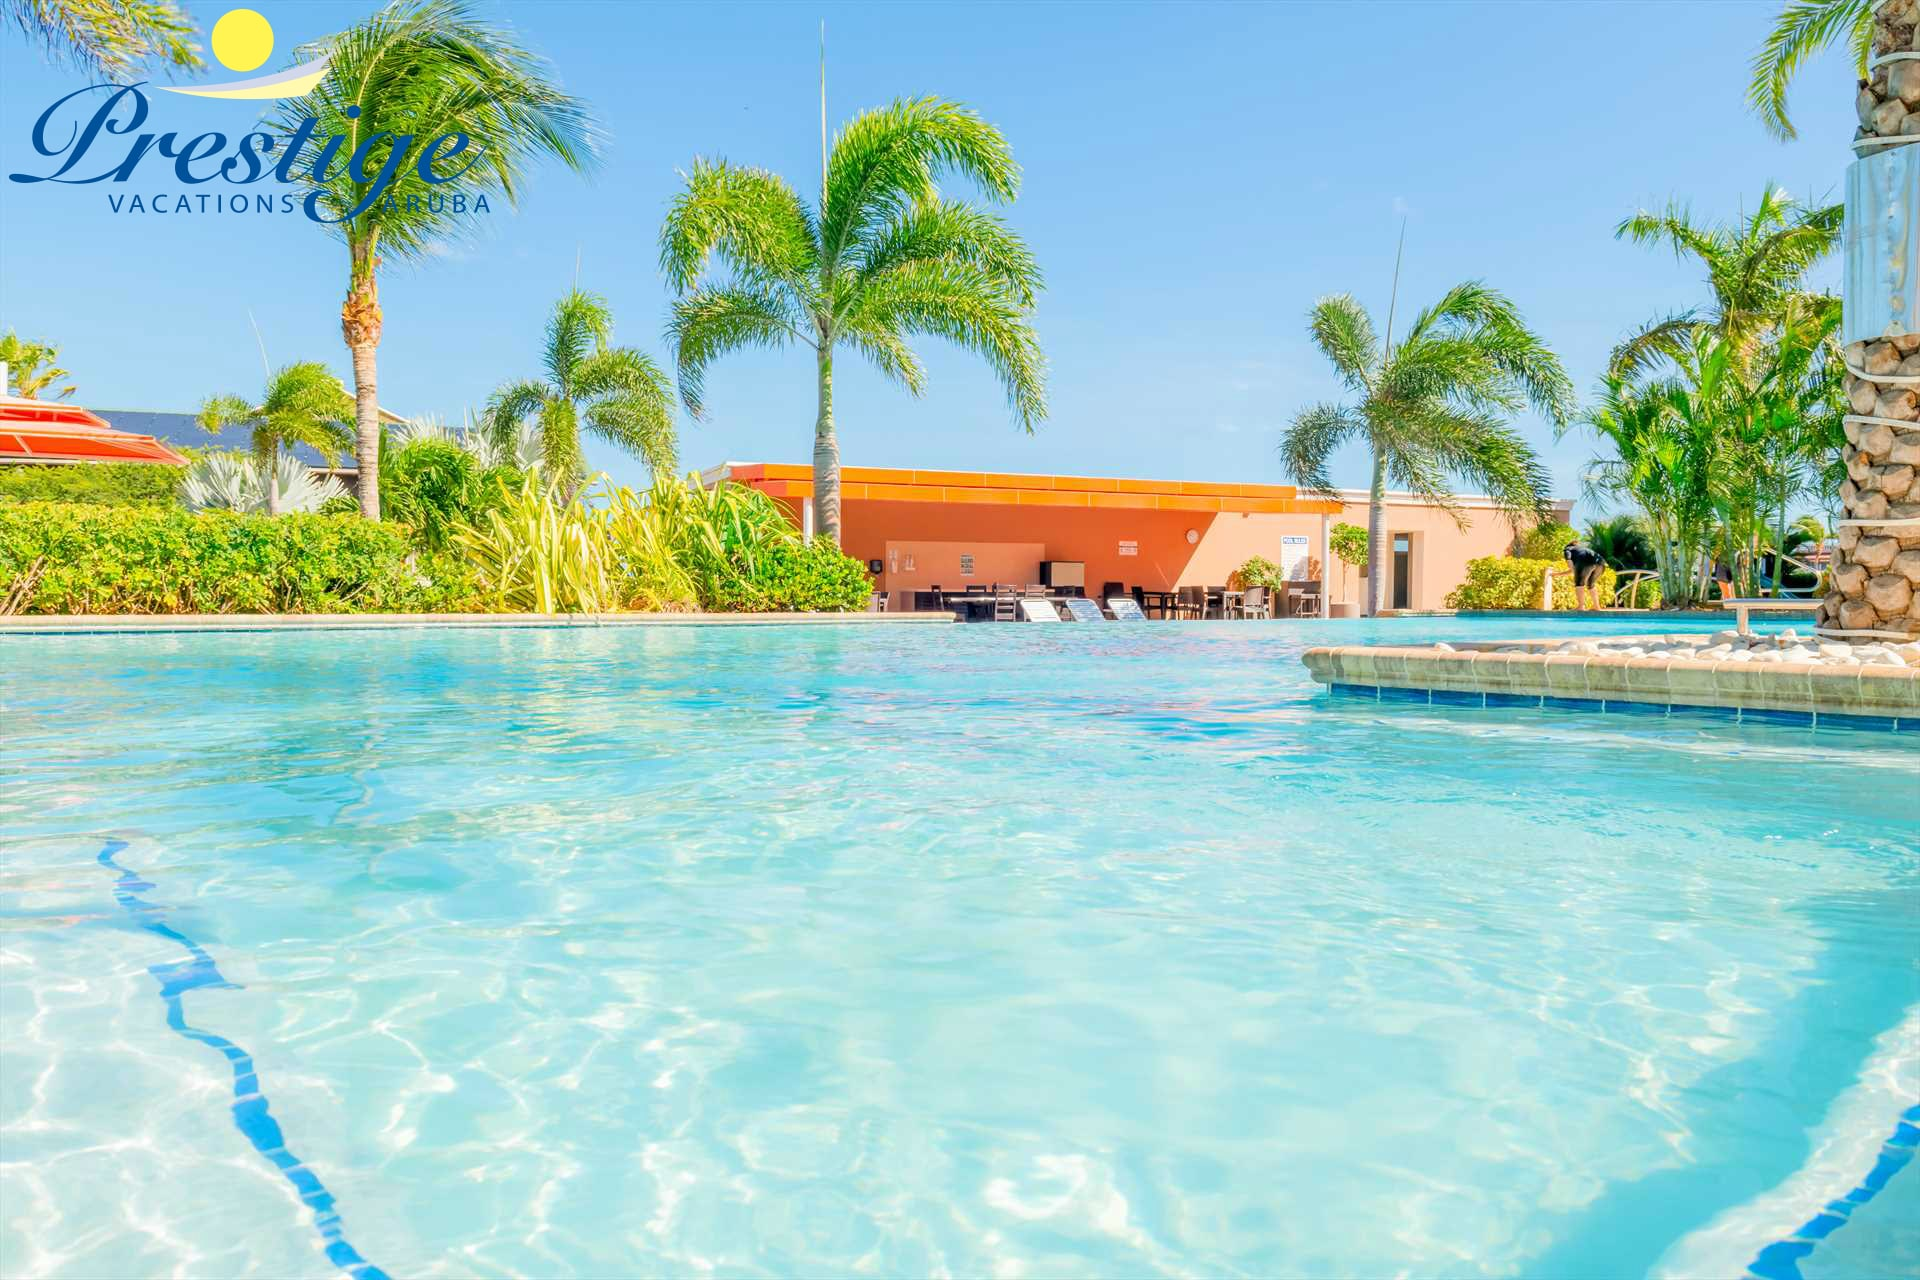 Indulge in the pool and unwind under the trees, the perfect Aruba vacation!